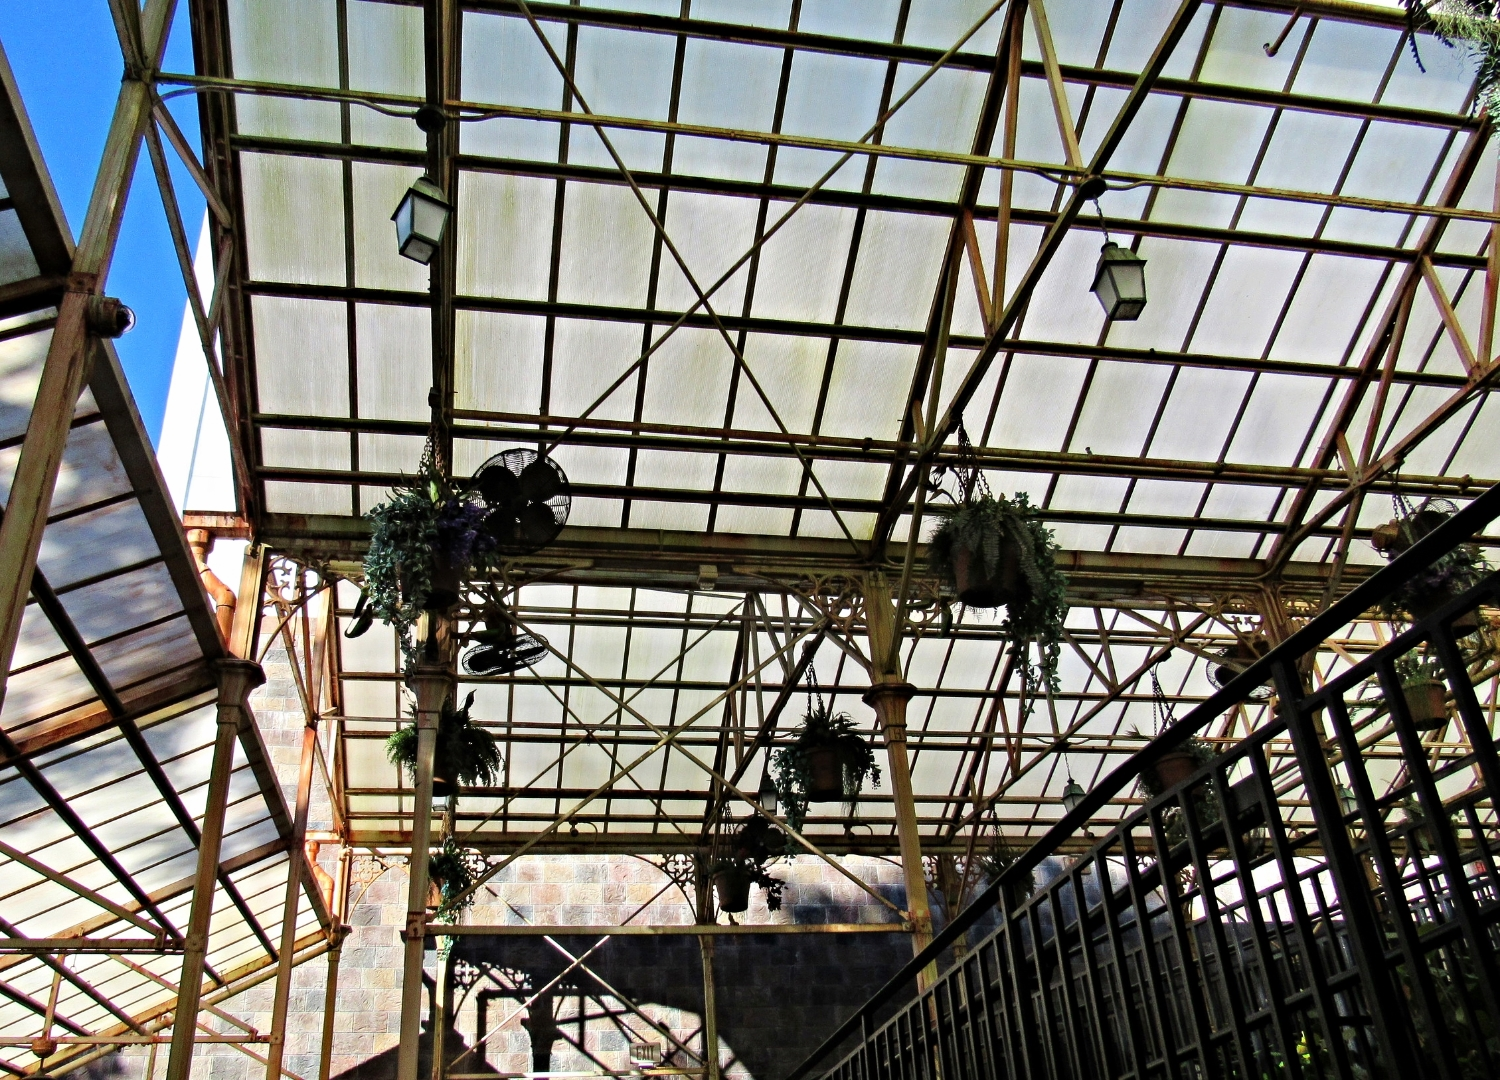 Plants Hanging in the Greenhouse in the Forbidden Journey Queue